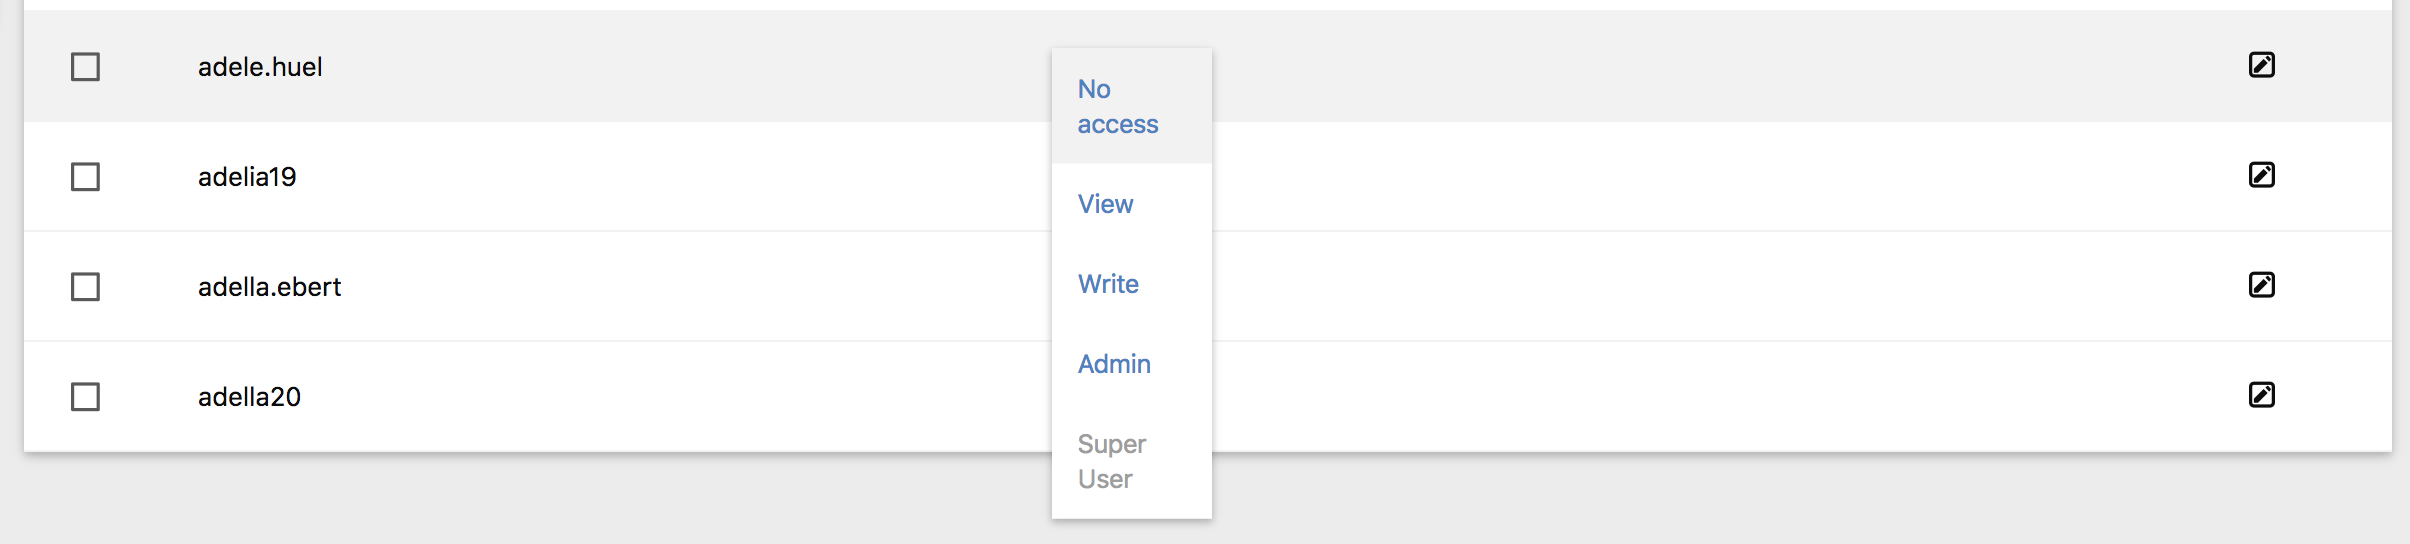 Users Table Role Dropdown